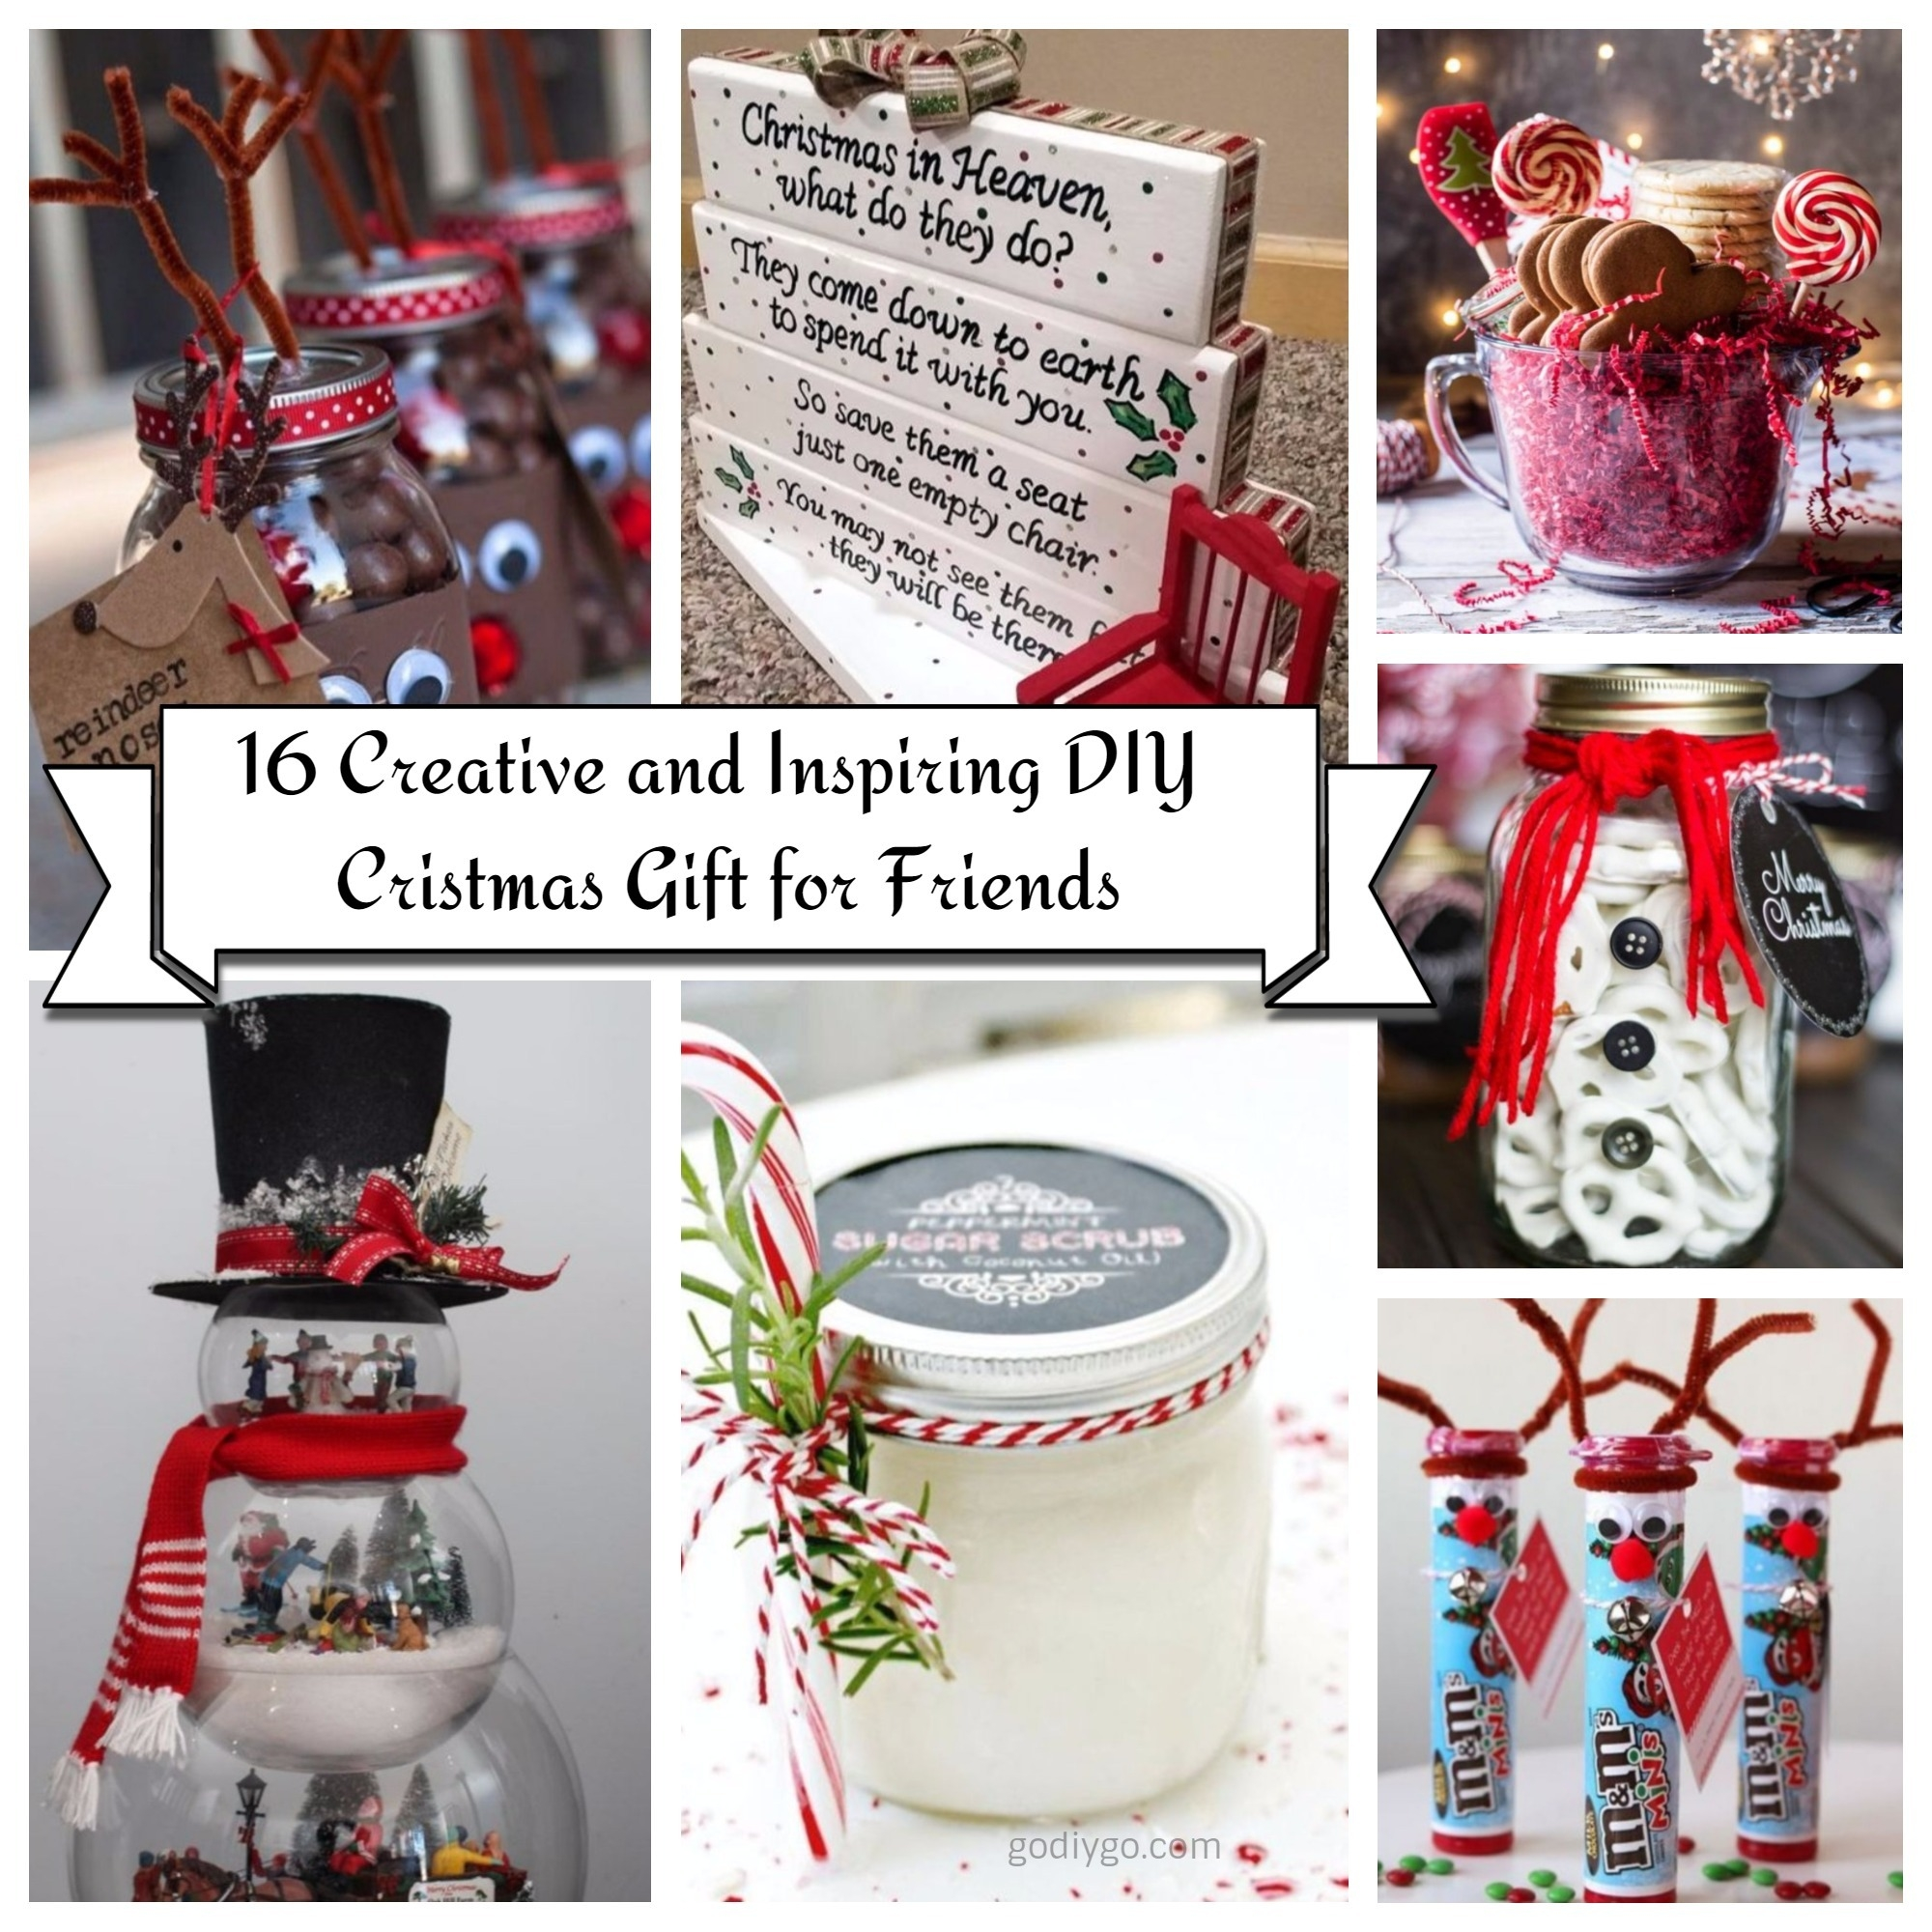 16 Creative and Inspiring DIY Christmas Gift for Friends - GODIYGO.COM